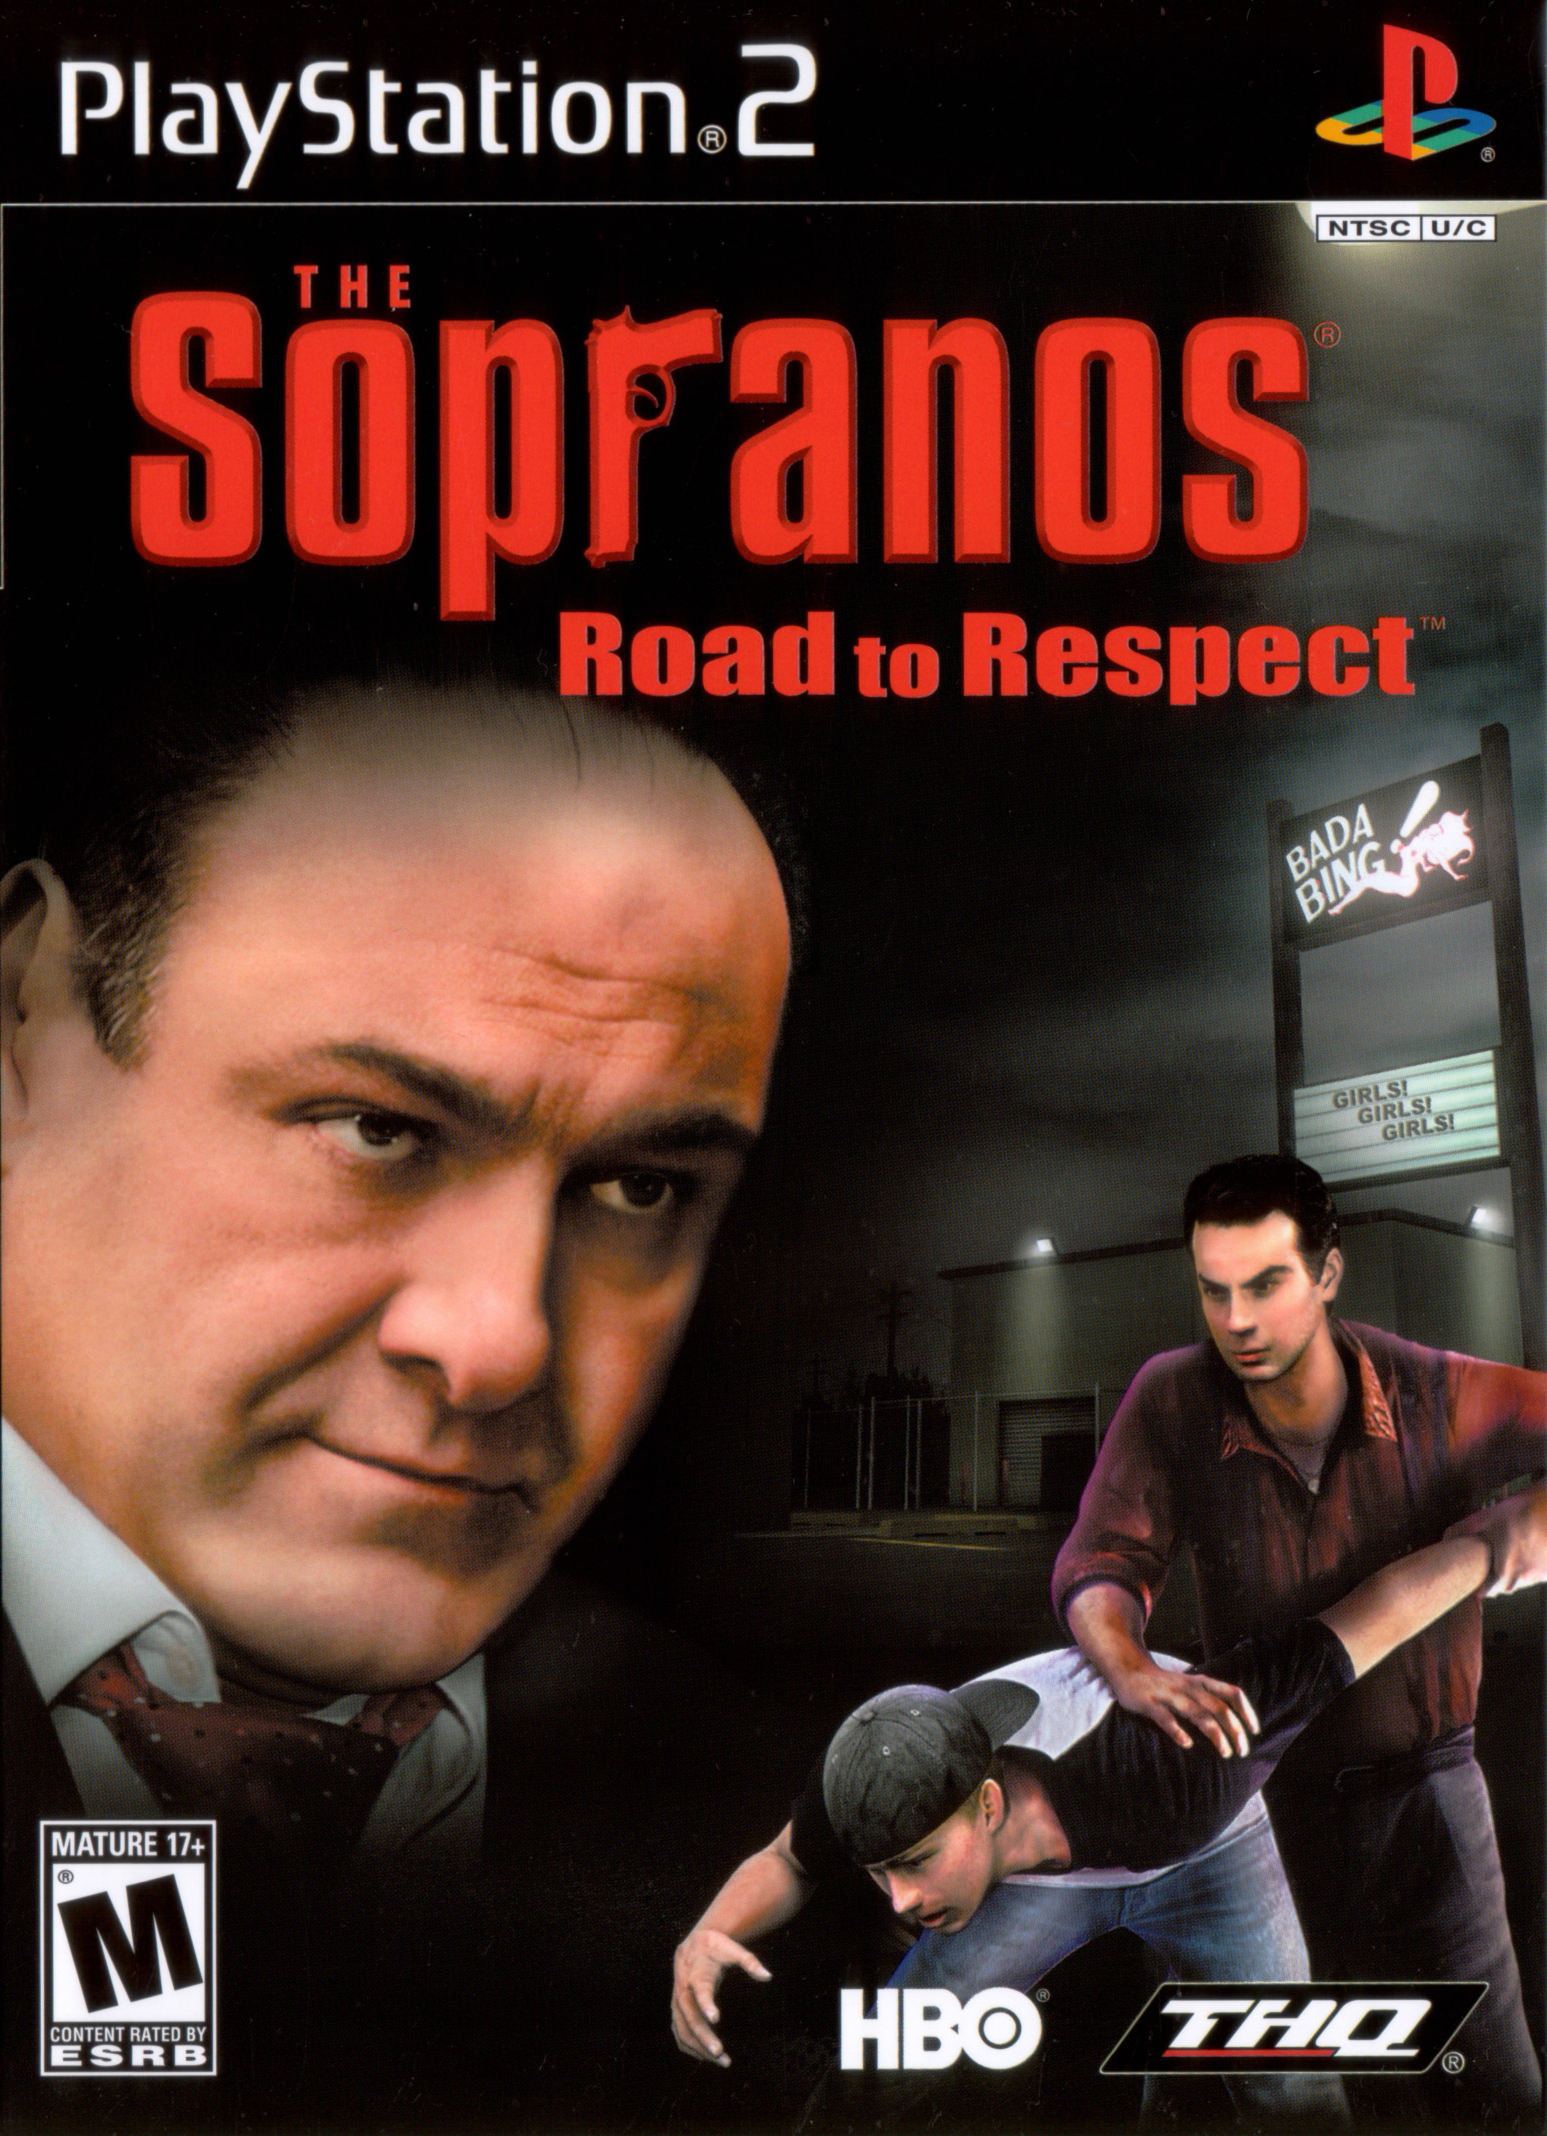 The Sopranos Road to Respect